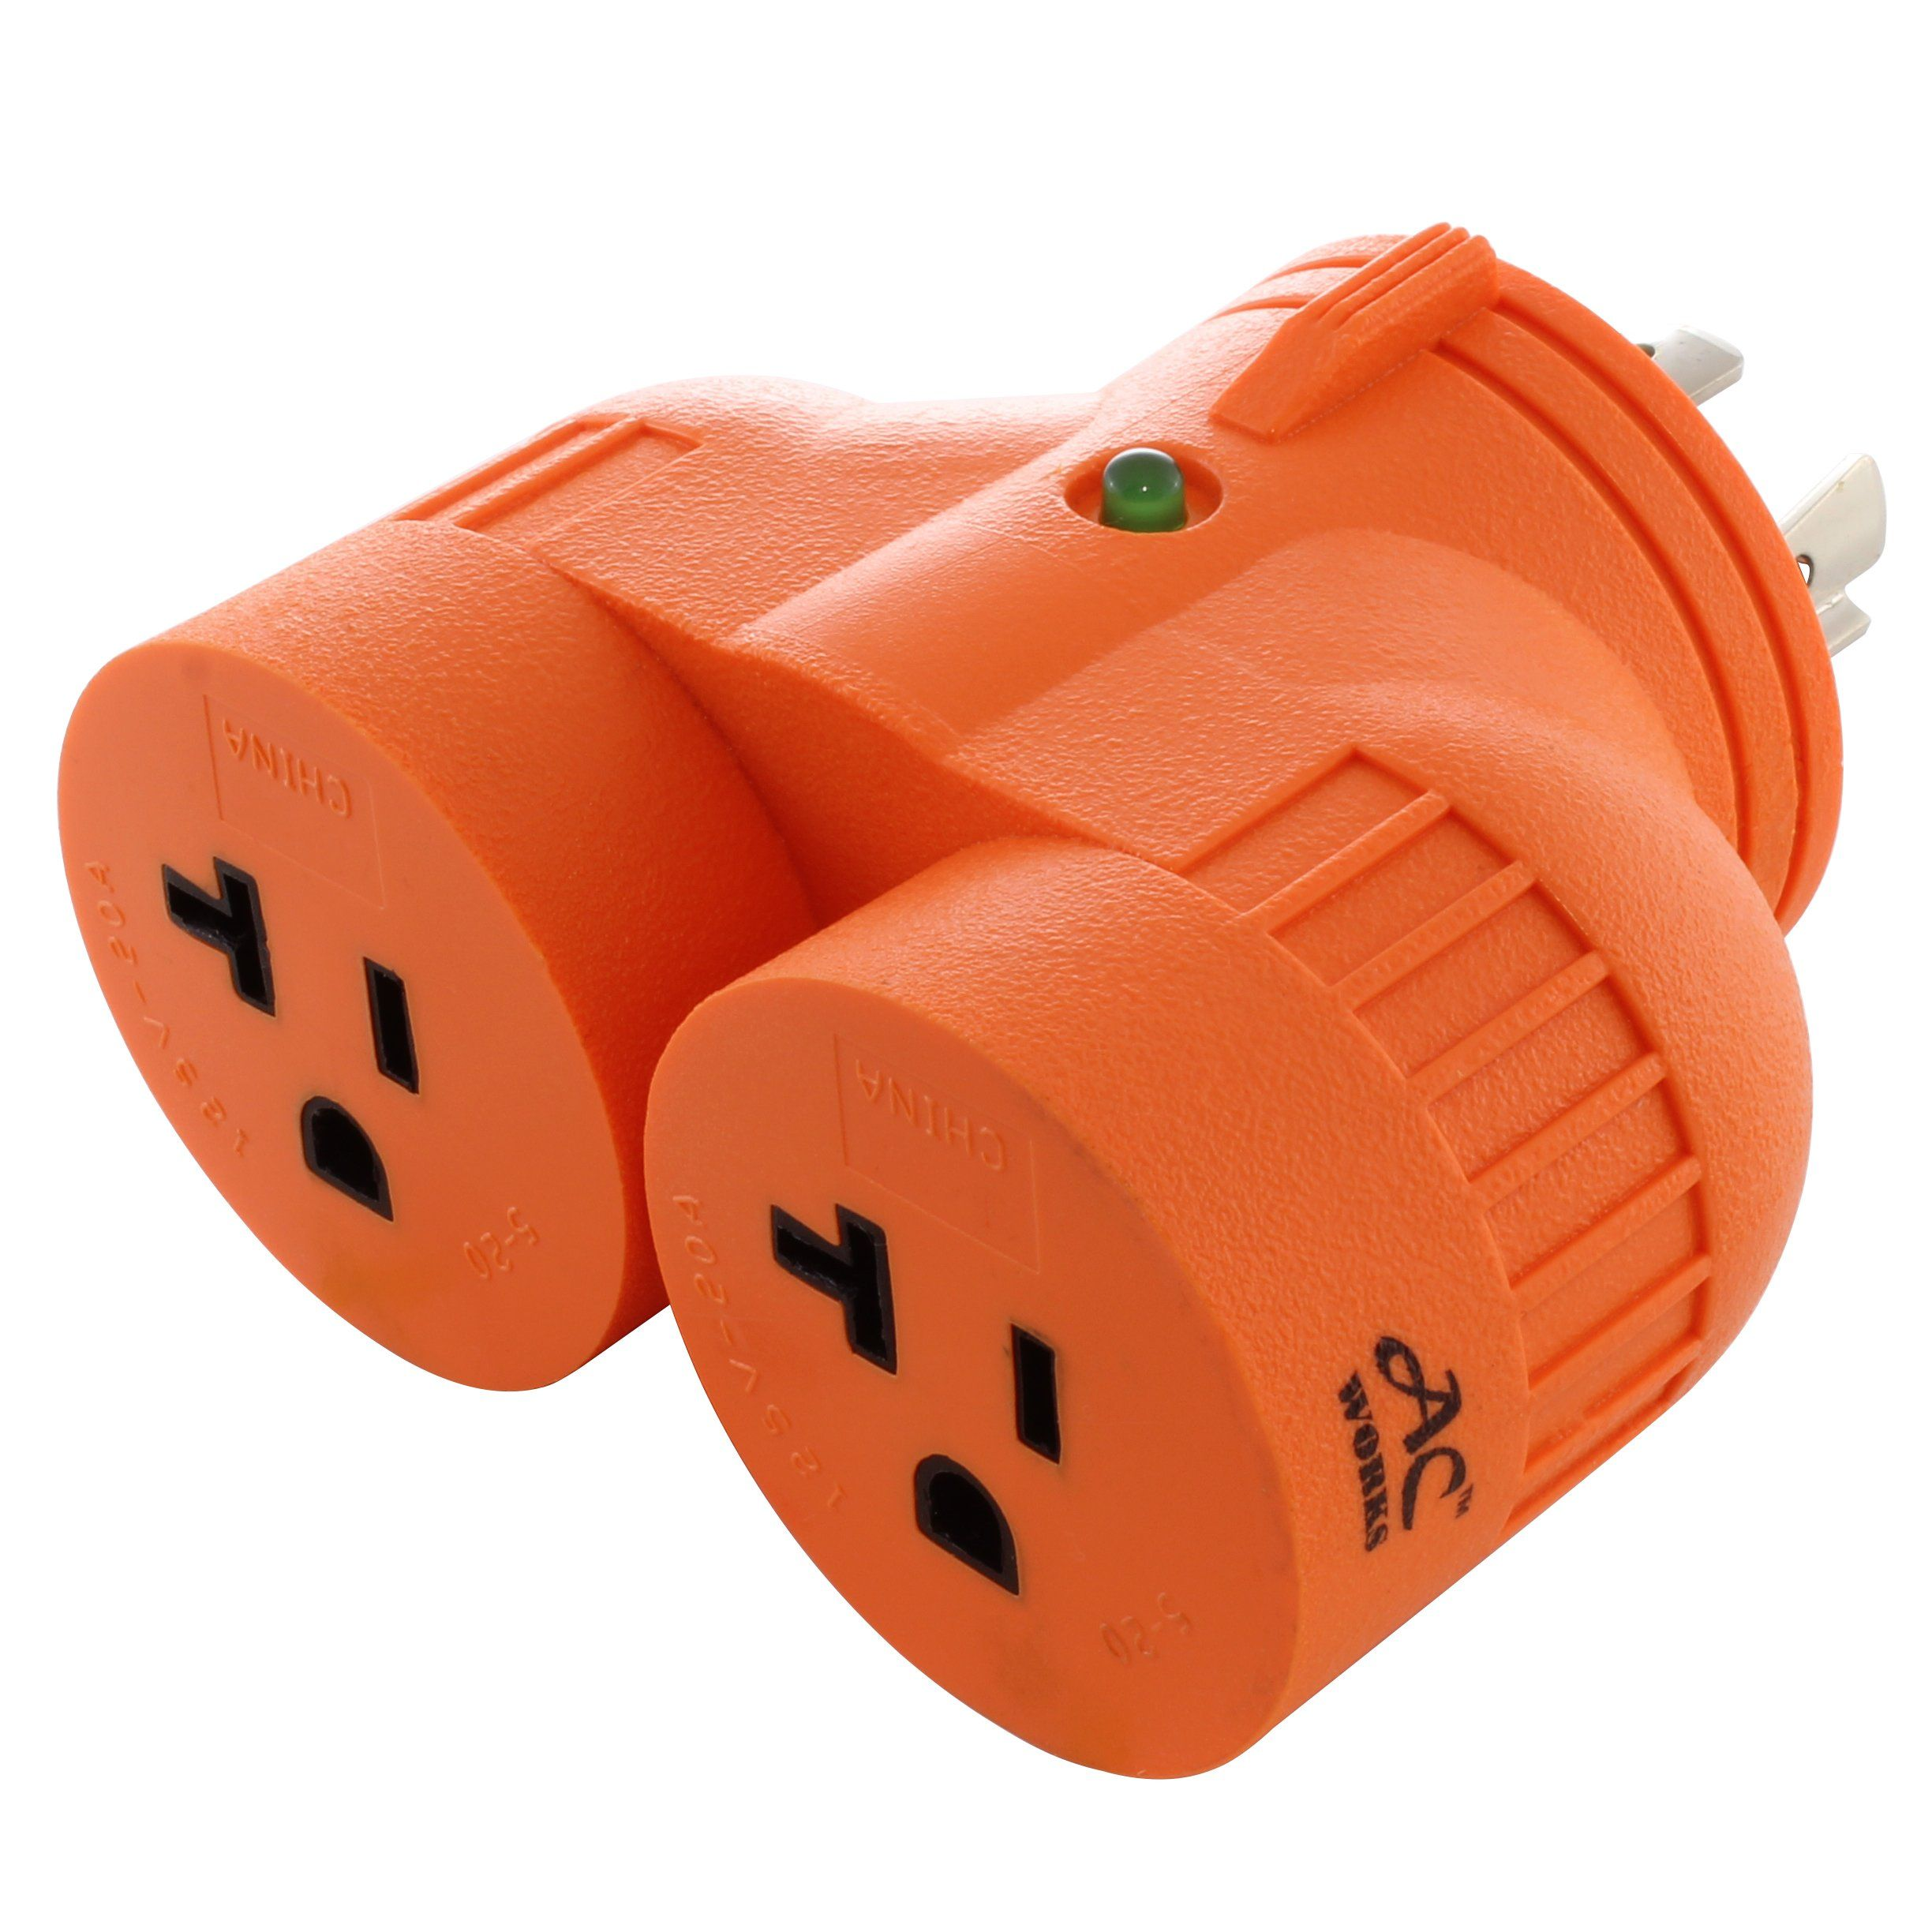 Ac Works V Duo Advl1420520 Adapter L14 20p 20a 4 Prong Plug To 2 15 20a Household Connectors Plugs Dryer Plug It Works